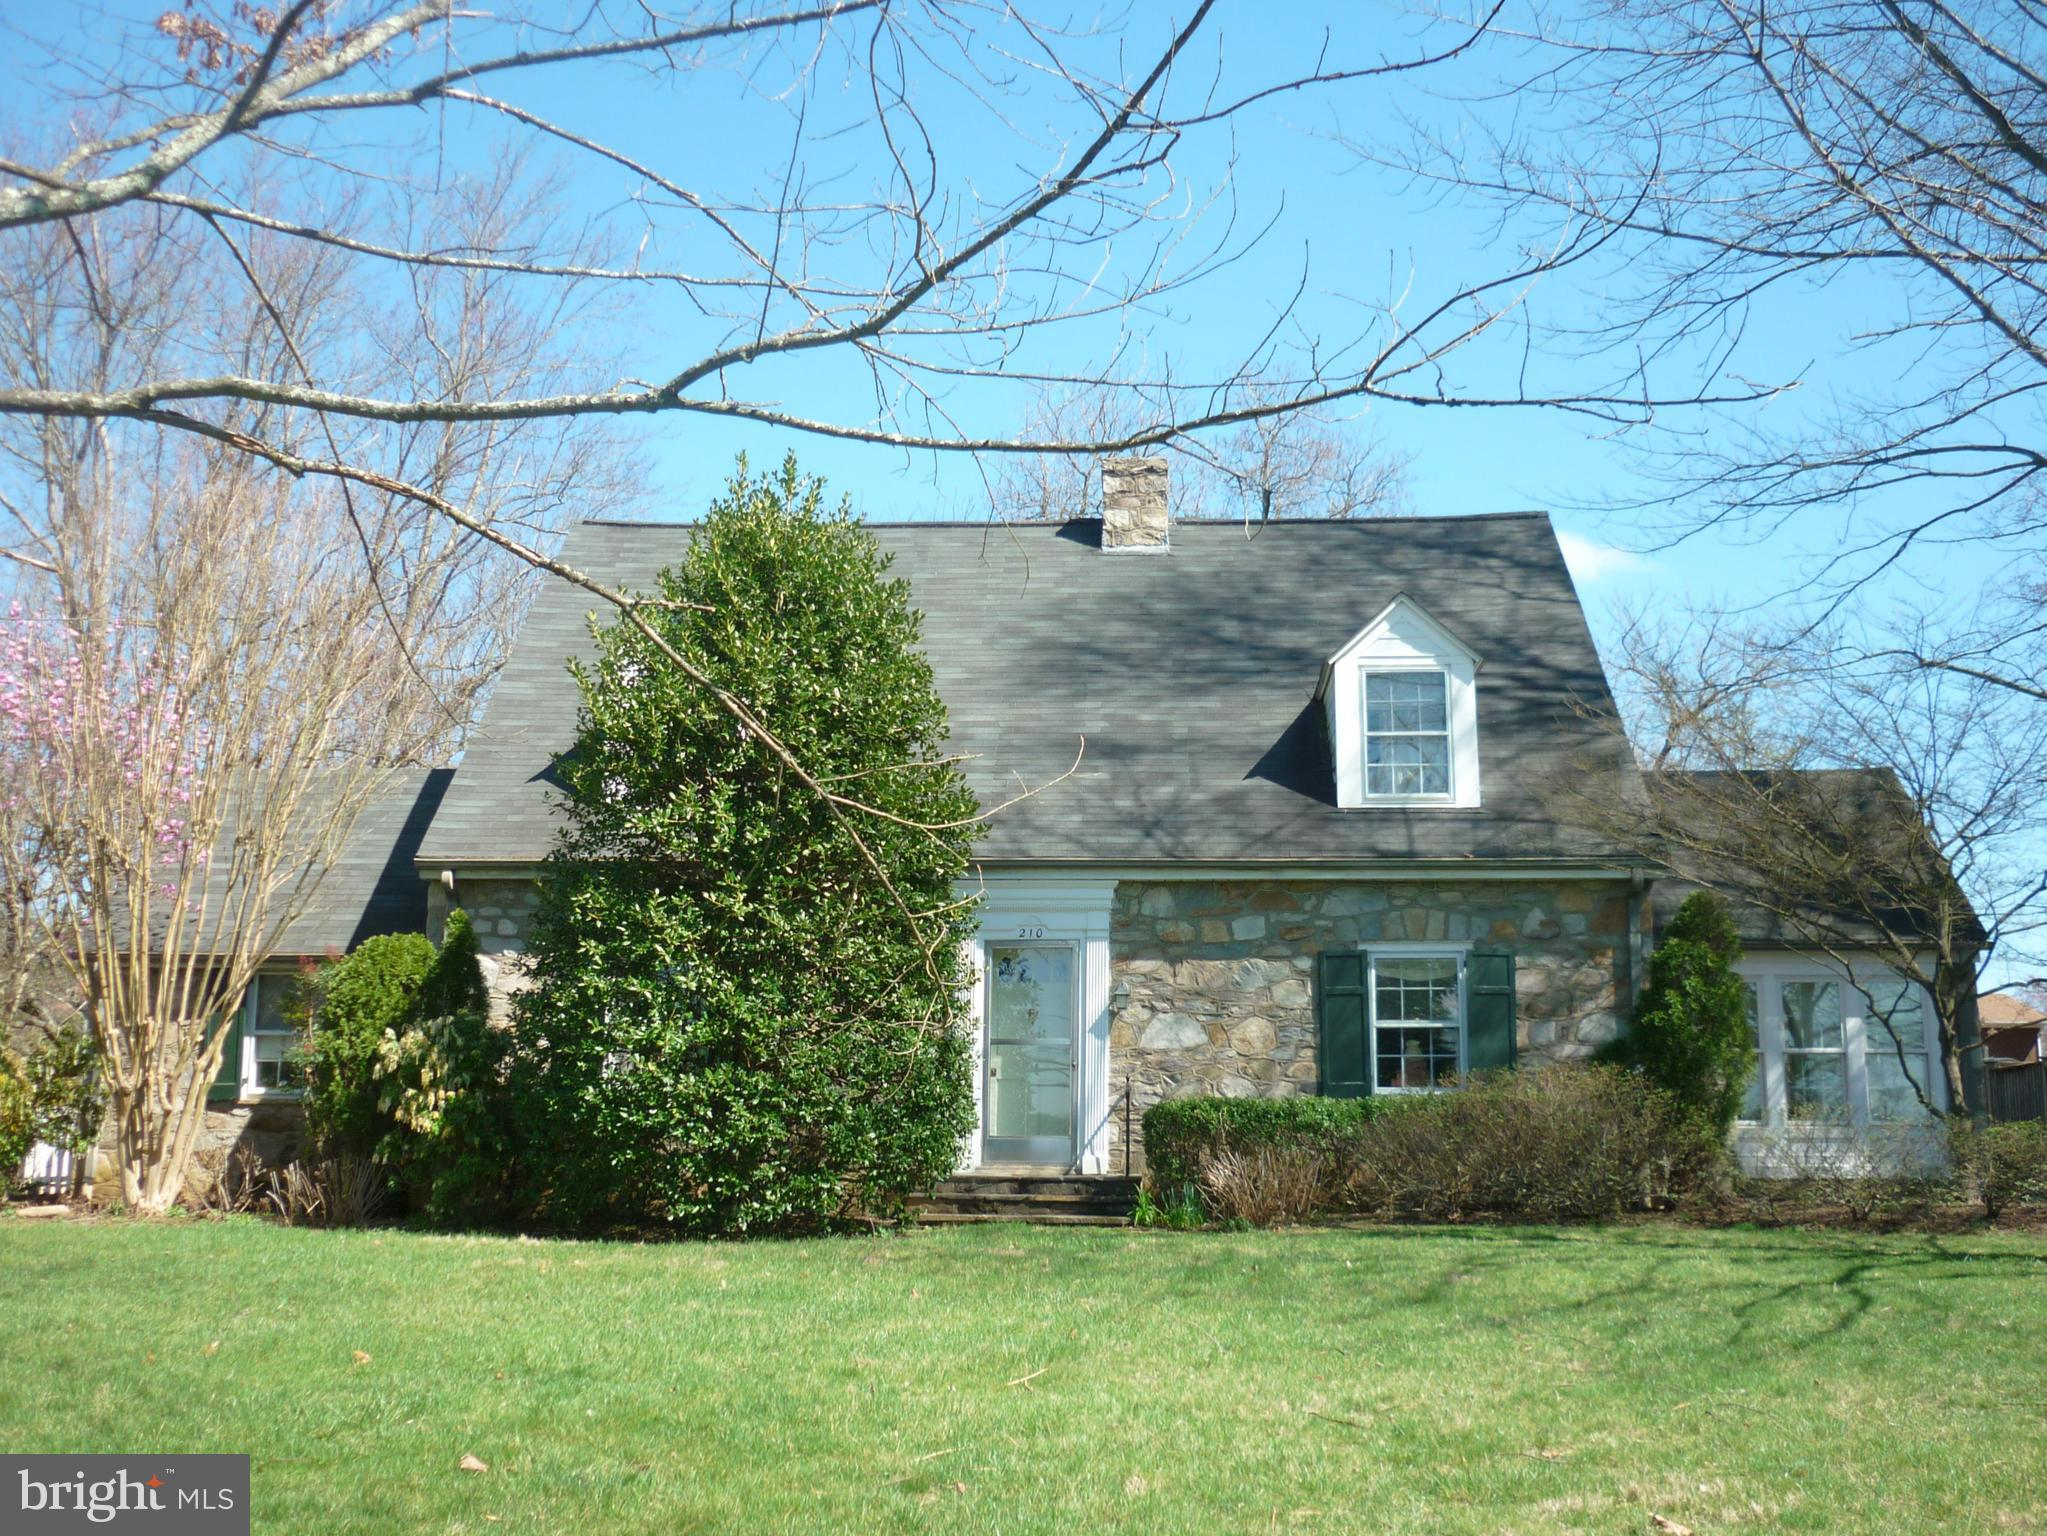 210 S 32nd St, Purcellville, VA, 20132